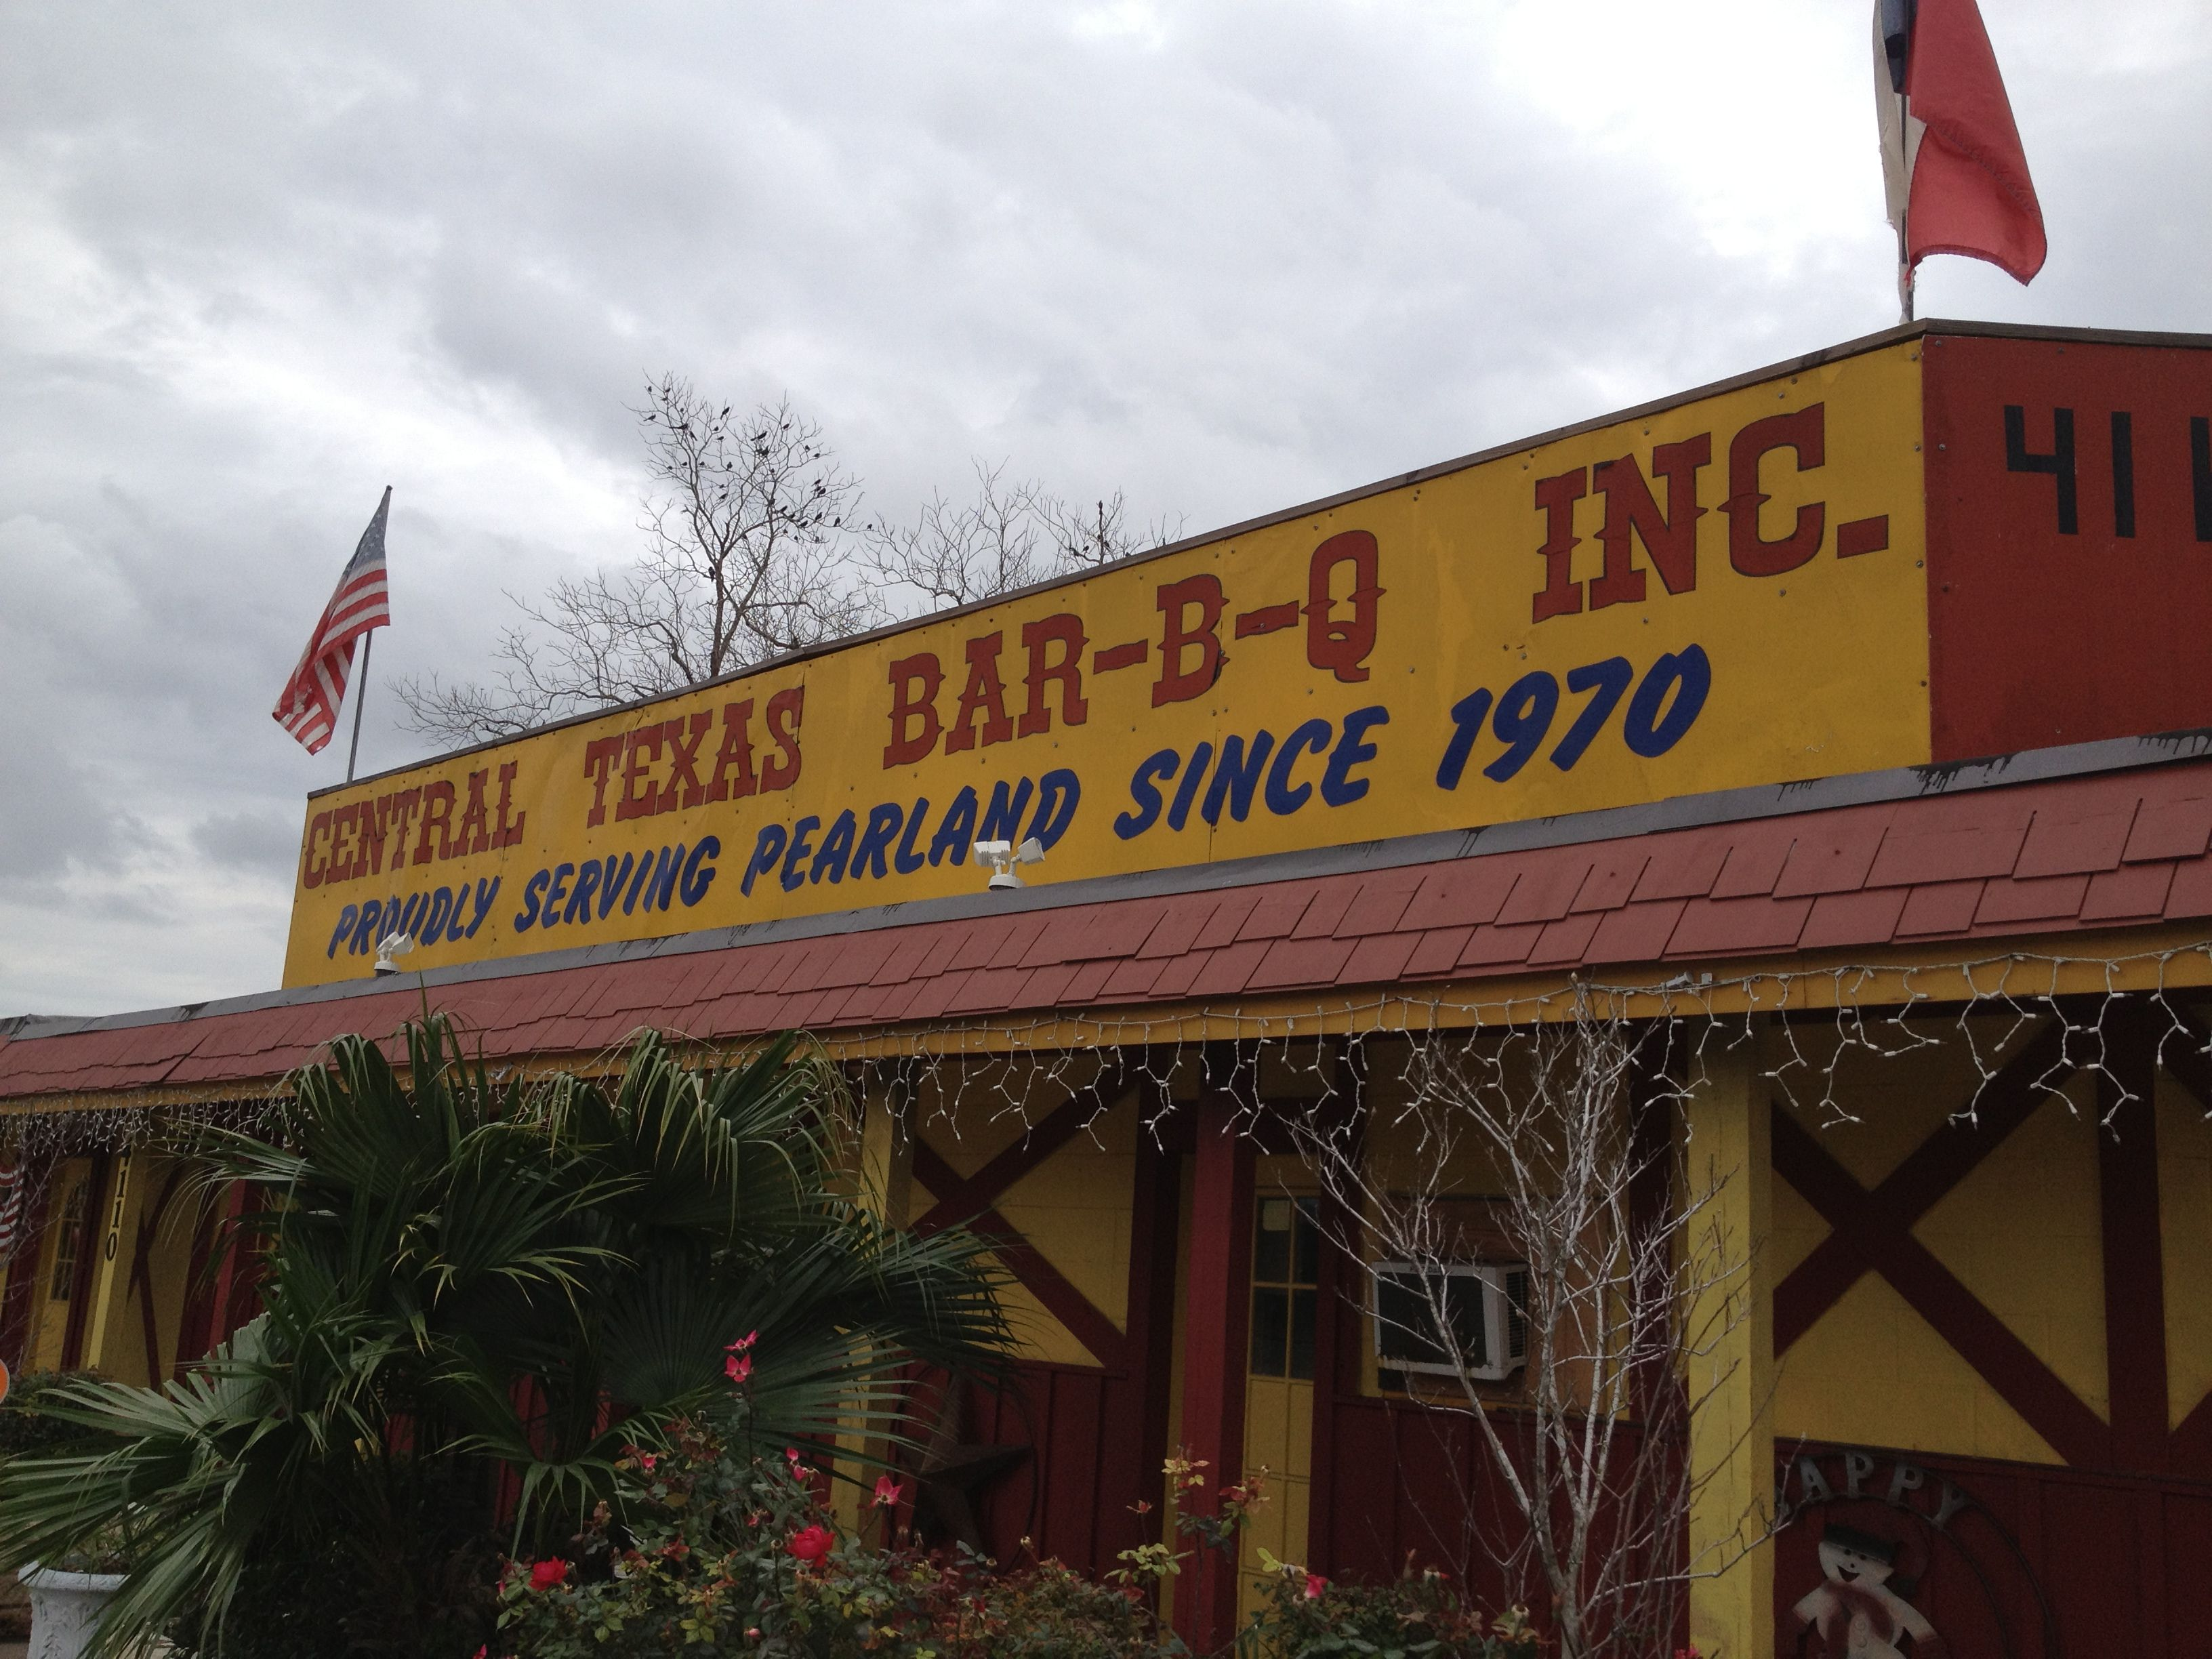 Best Barbecue Is Central Texas Style In Pearland Texas Barbecue Pearland Texas Pearland